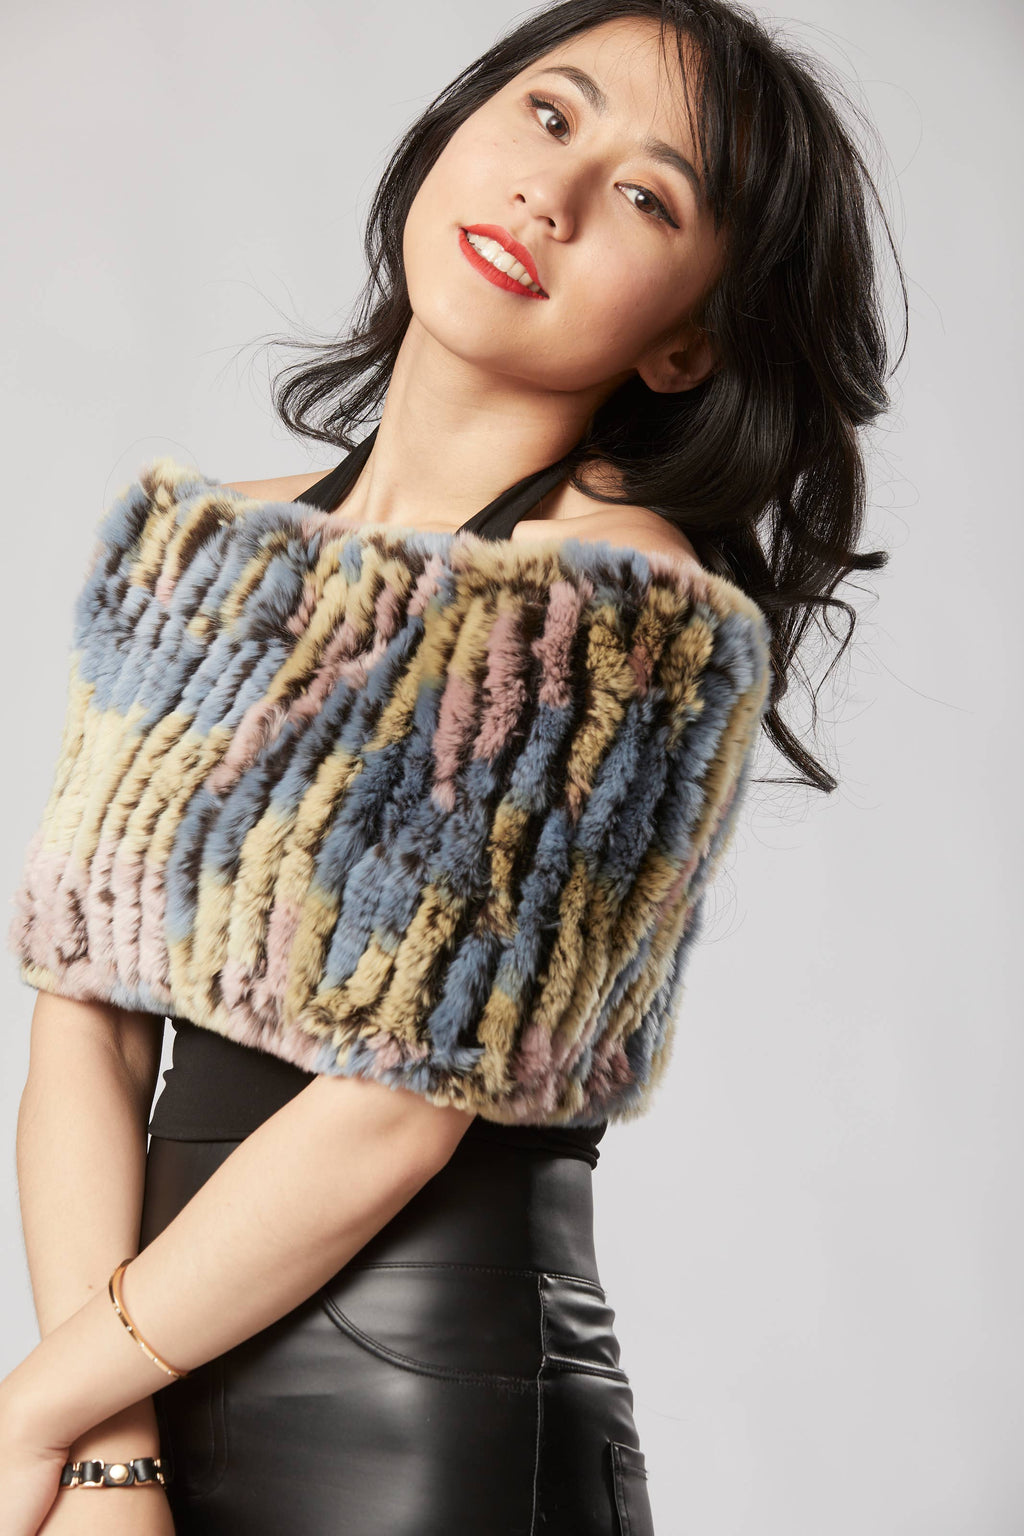 Opulence Fluff - Griselle Shrug/ Cape/ Scarf - Multi Blue, Yellow, Beige